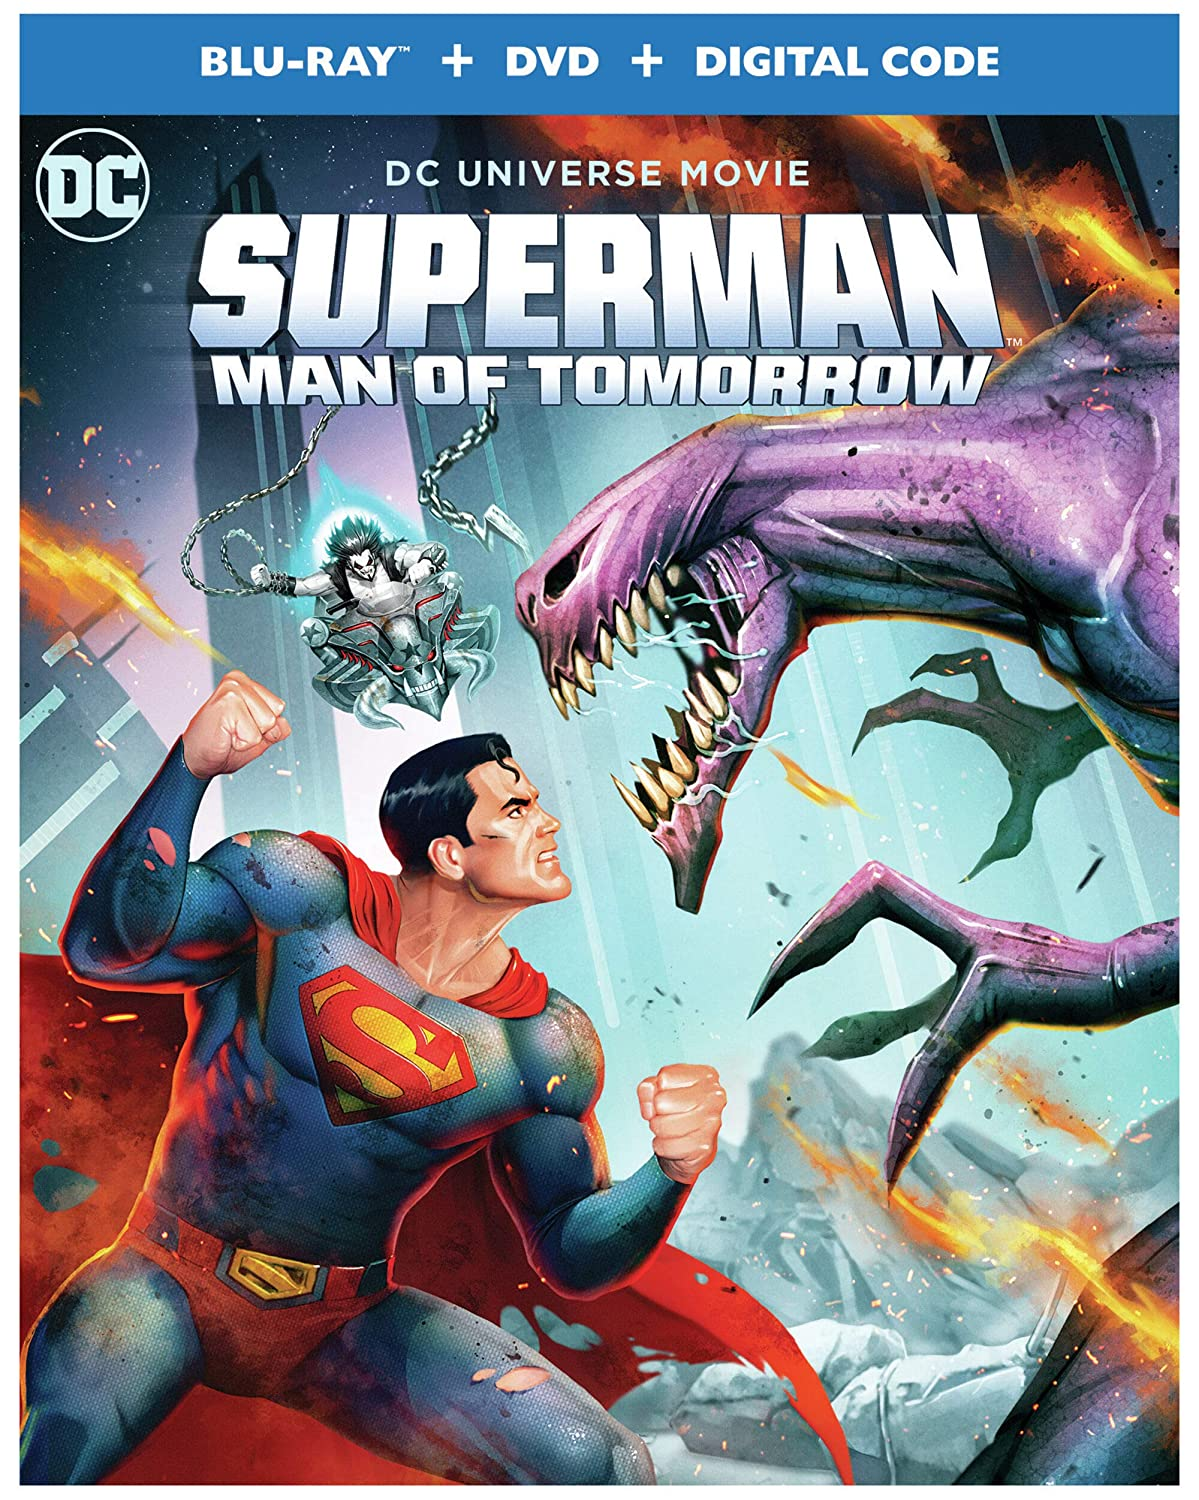 Superman Man of Tomorrow Animated Movie - Amazon